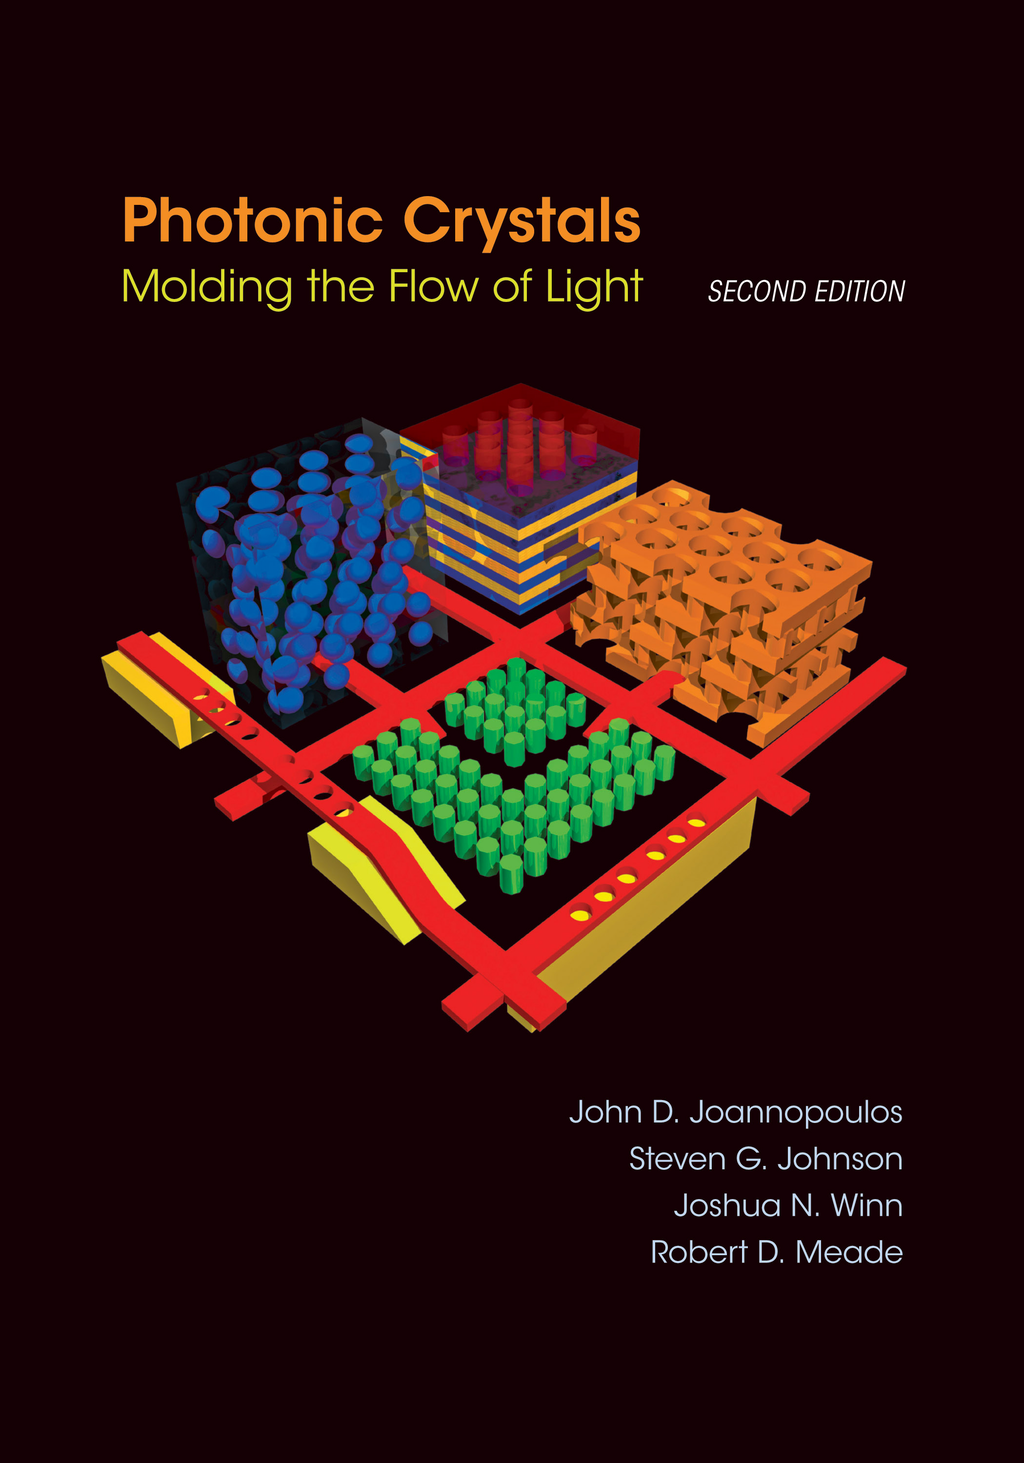 Photonic Crystals: Molding the Flow of Light (Second Edition) By: John D. Joannopoulos,Joshua N. Winn,Robert D. Meade,Steven G. Johnson